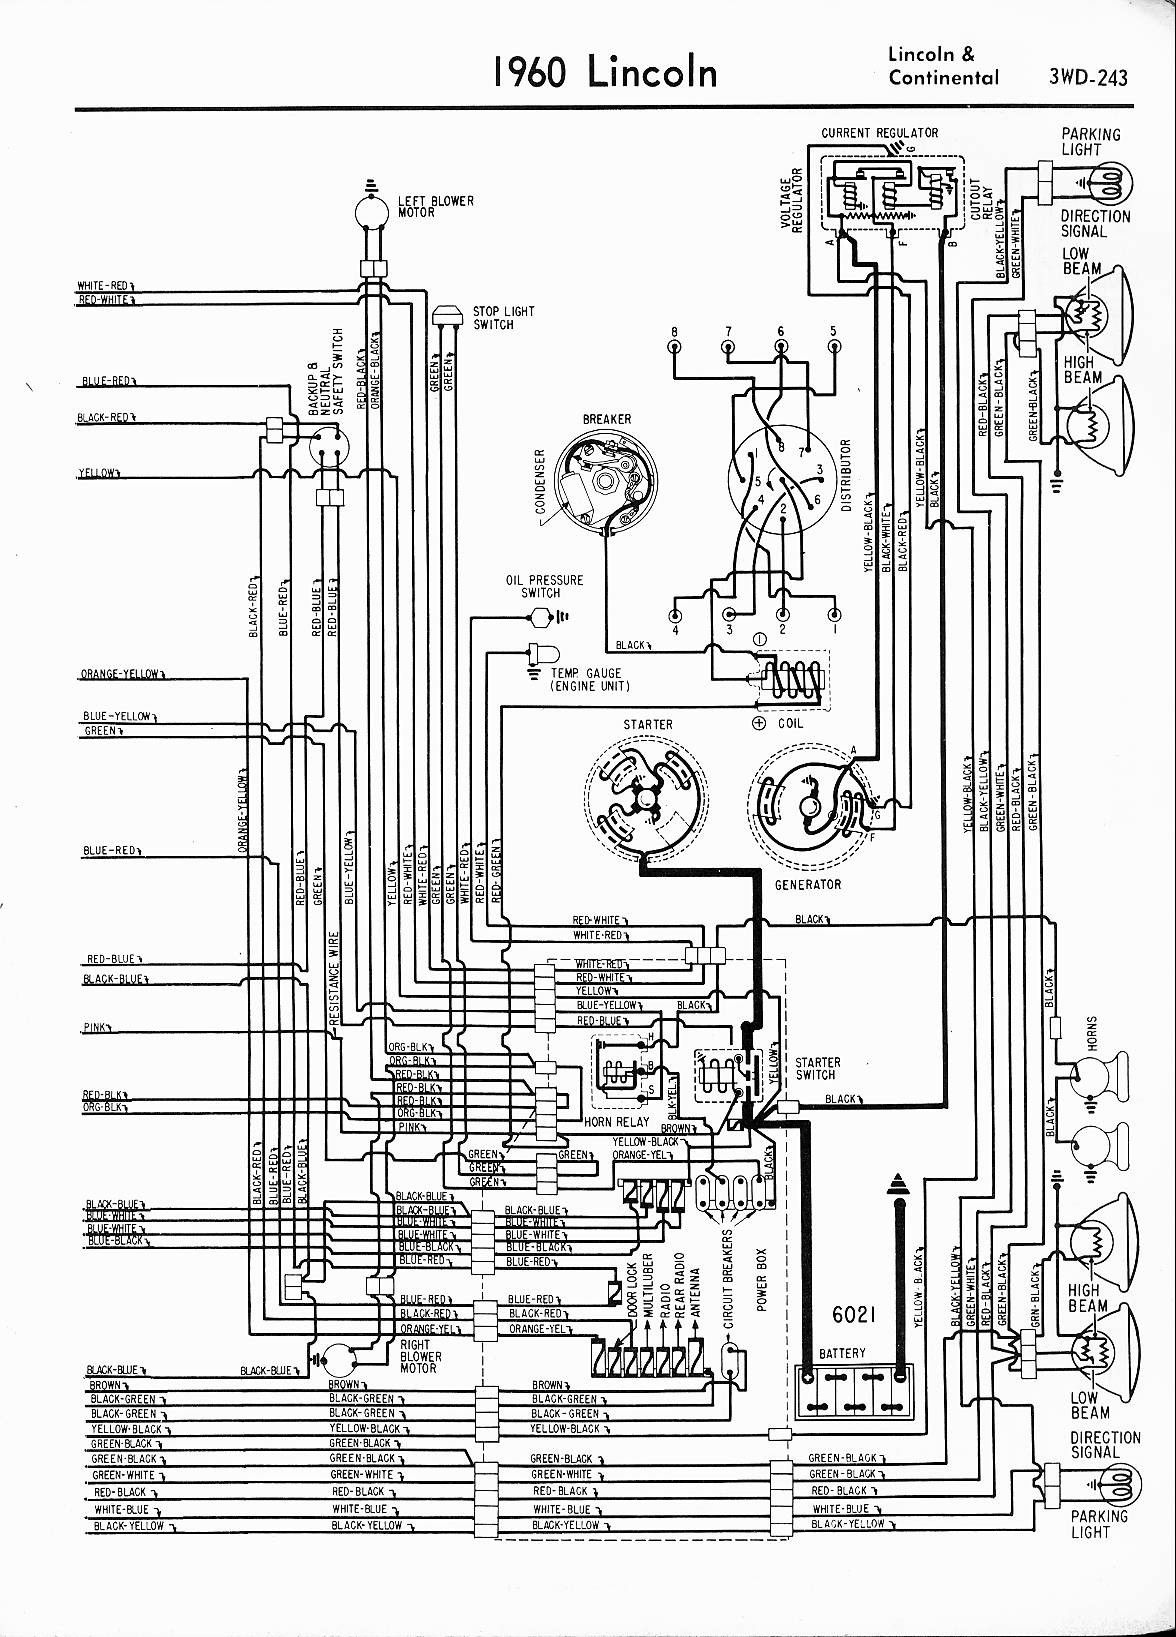 2003 Lincoln Navigator Engine Diagram In 2021 Lincoln Navigator Lincoln Town Car Diagram Online